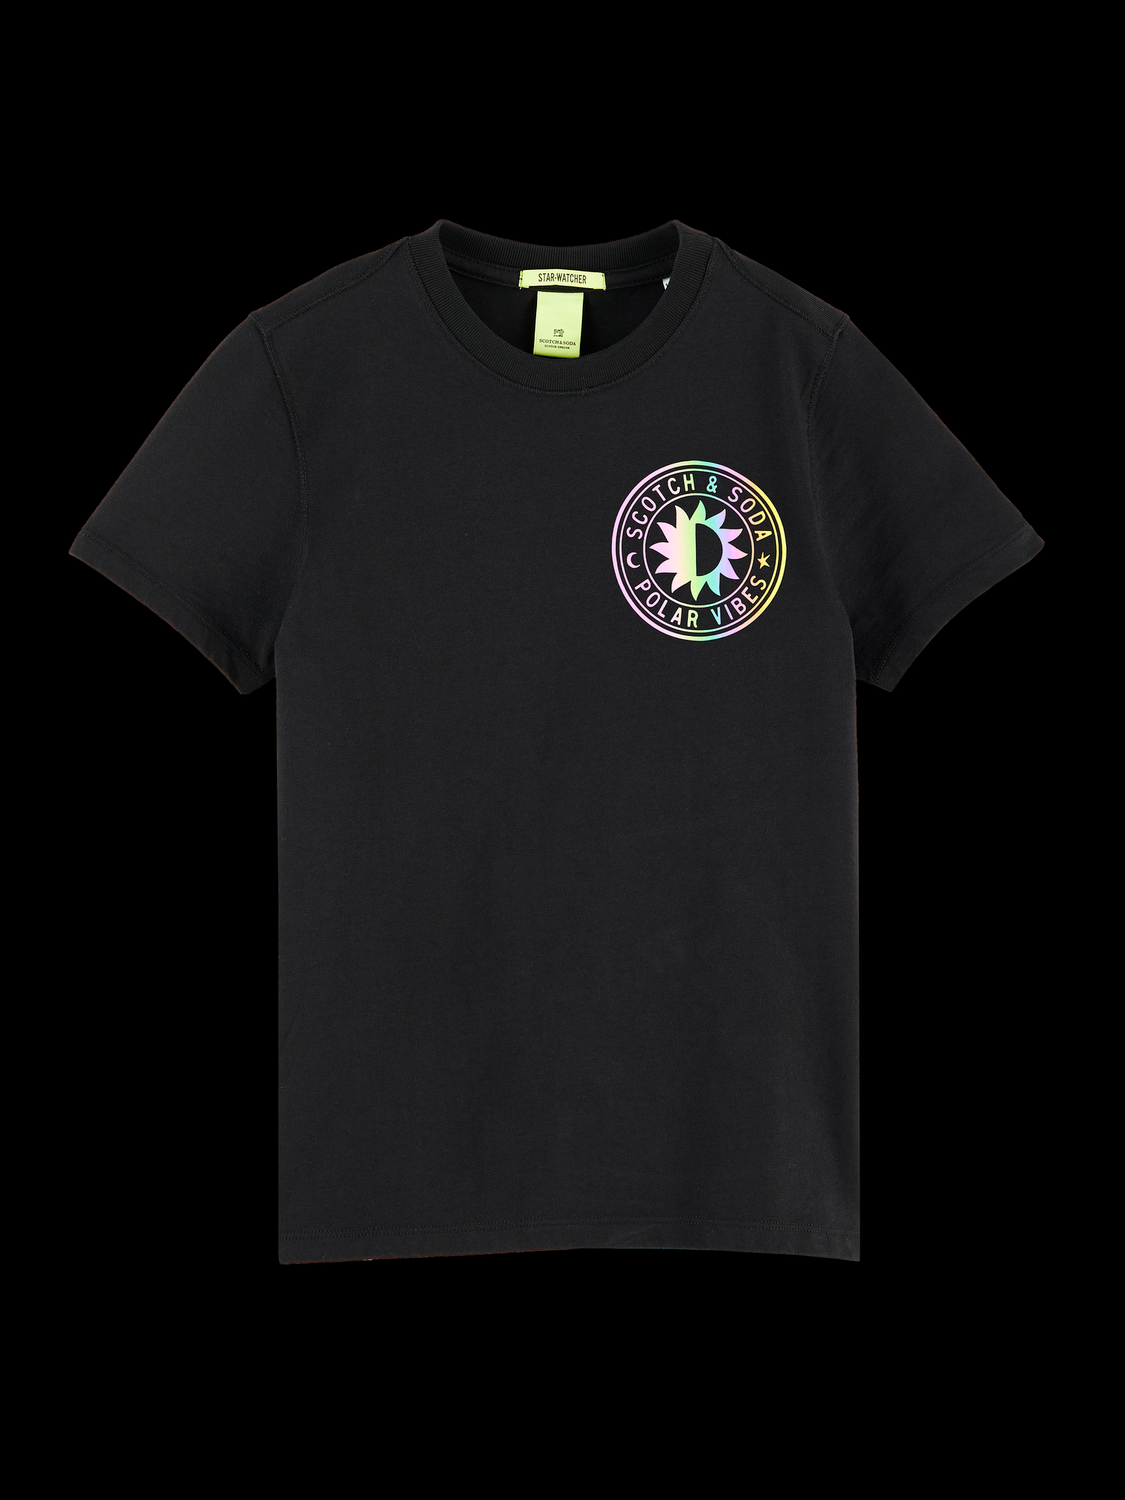 Kids Short sleeve reflective t-shirt